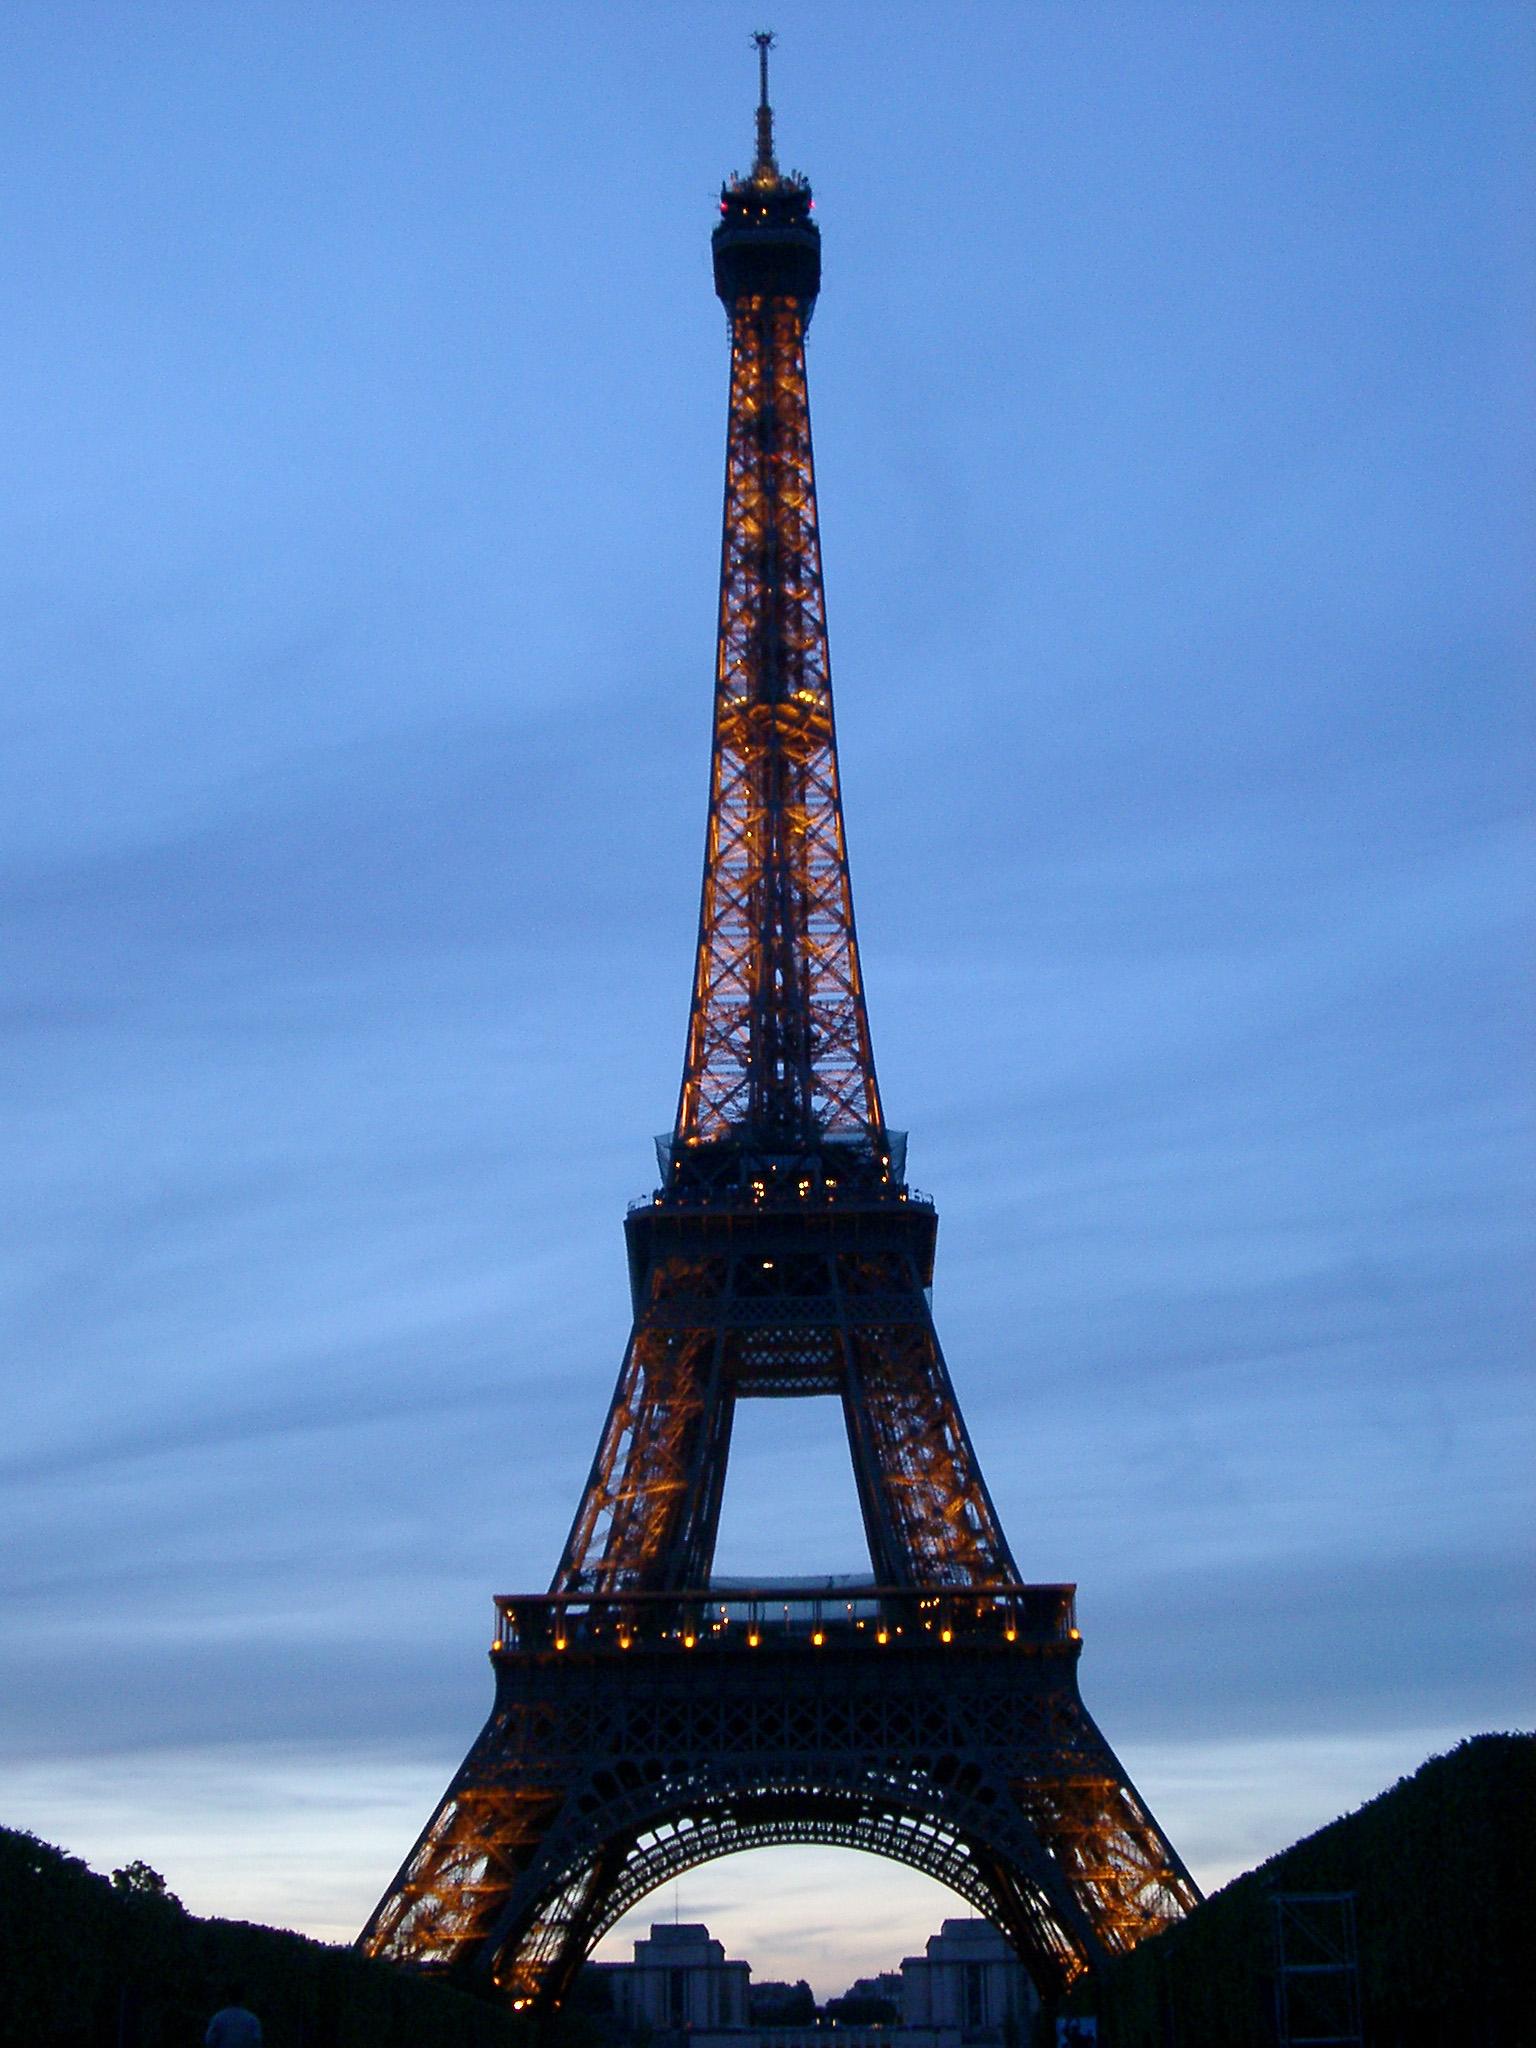 View of the iconic Eiffel Tower in Paris at dusk with the lights illuminated in a travel and vacation concept